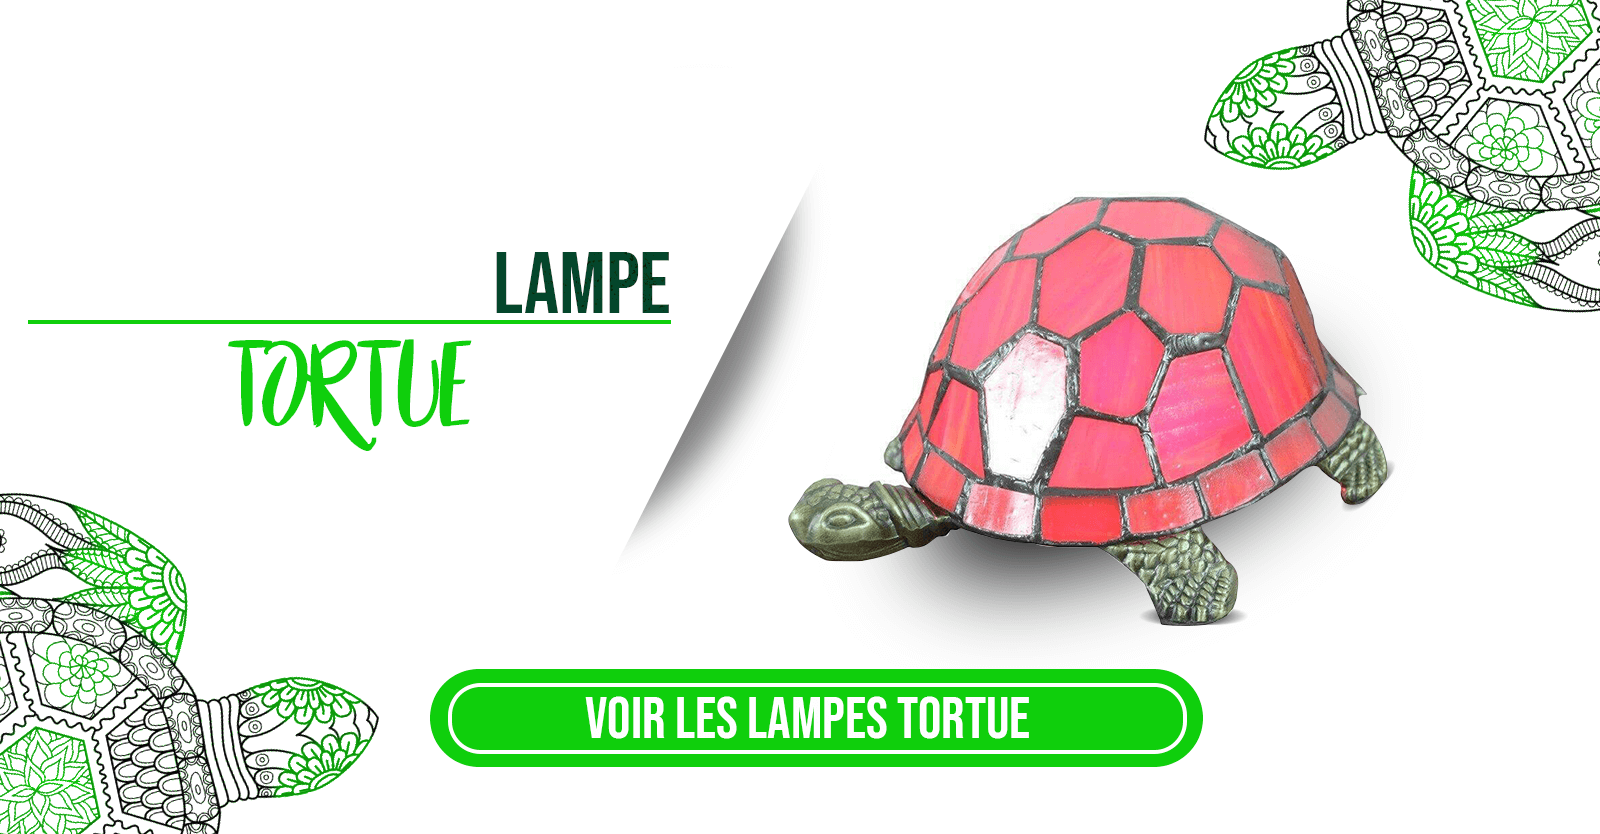 Lampes-tortue